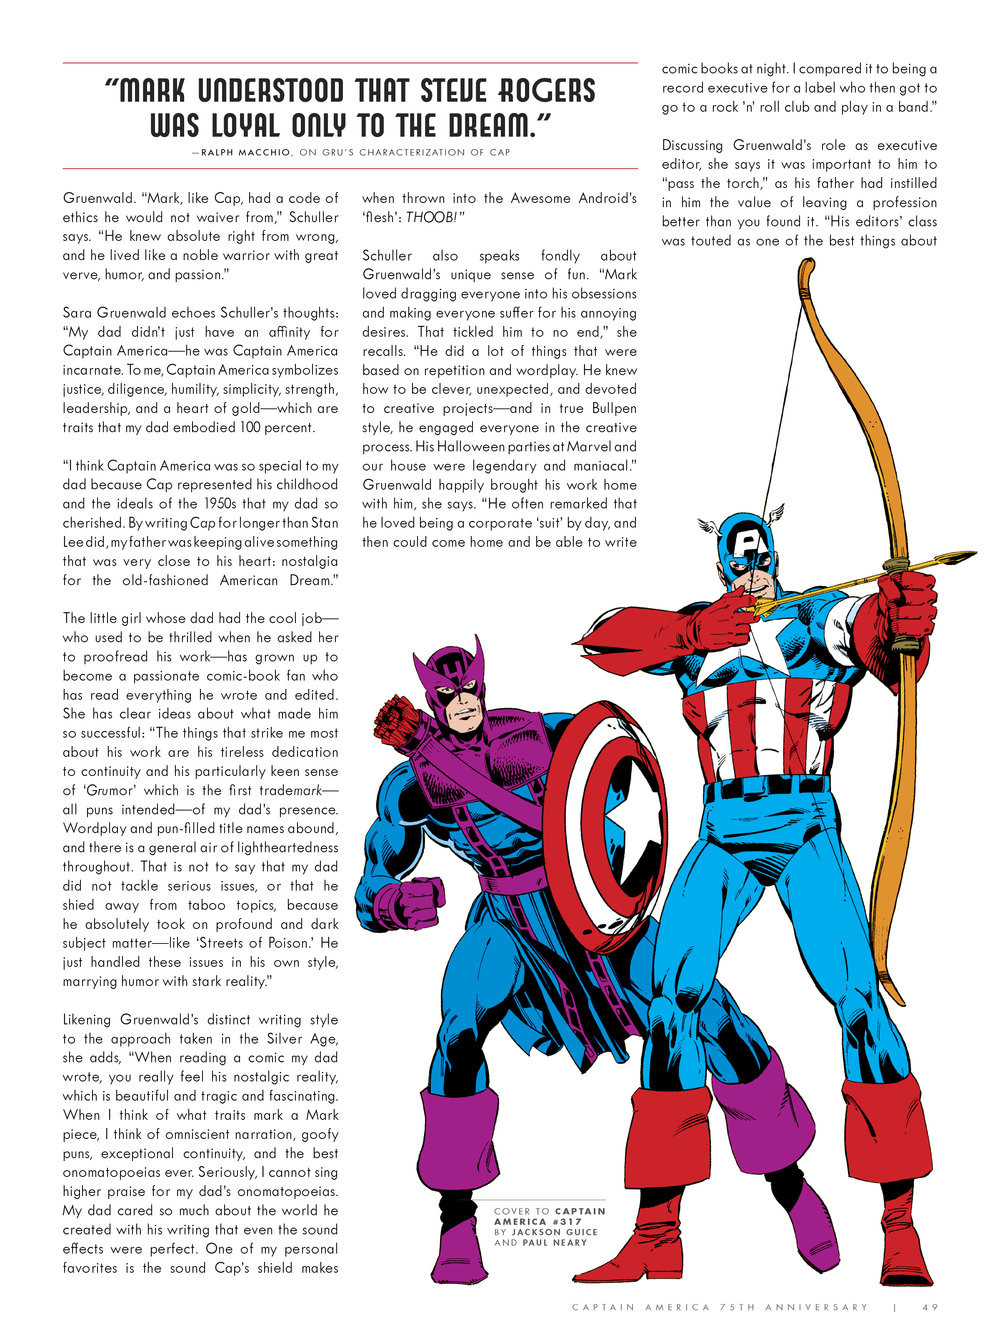 Design and layout for  Captain America 75th Anniversary Magazine . Content copyright Marvel Entertainment, 2016.